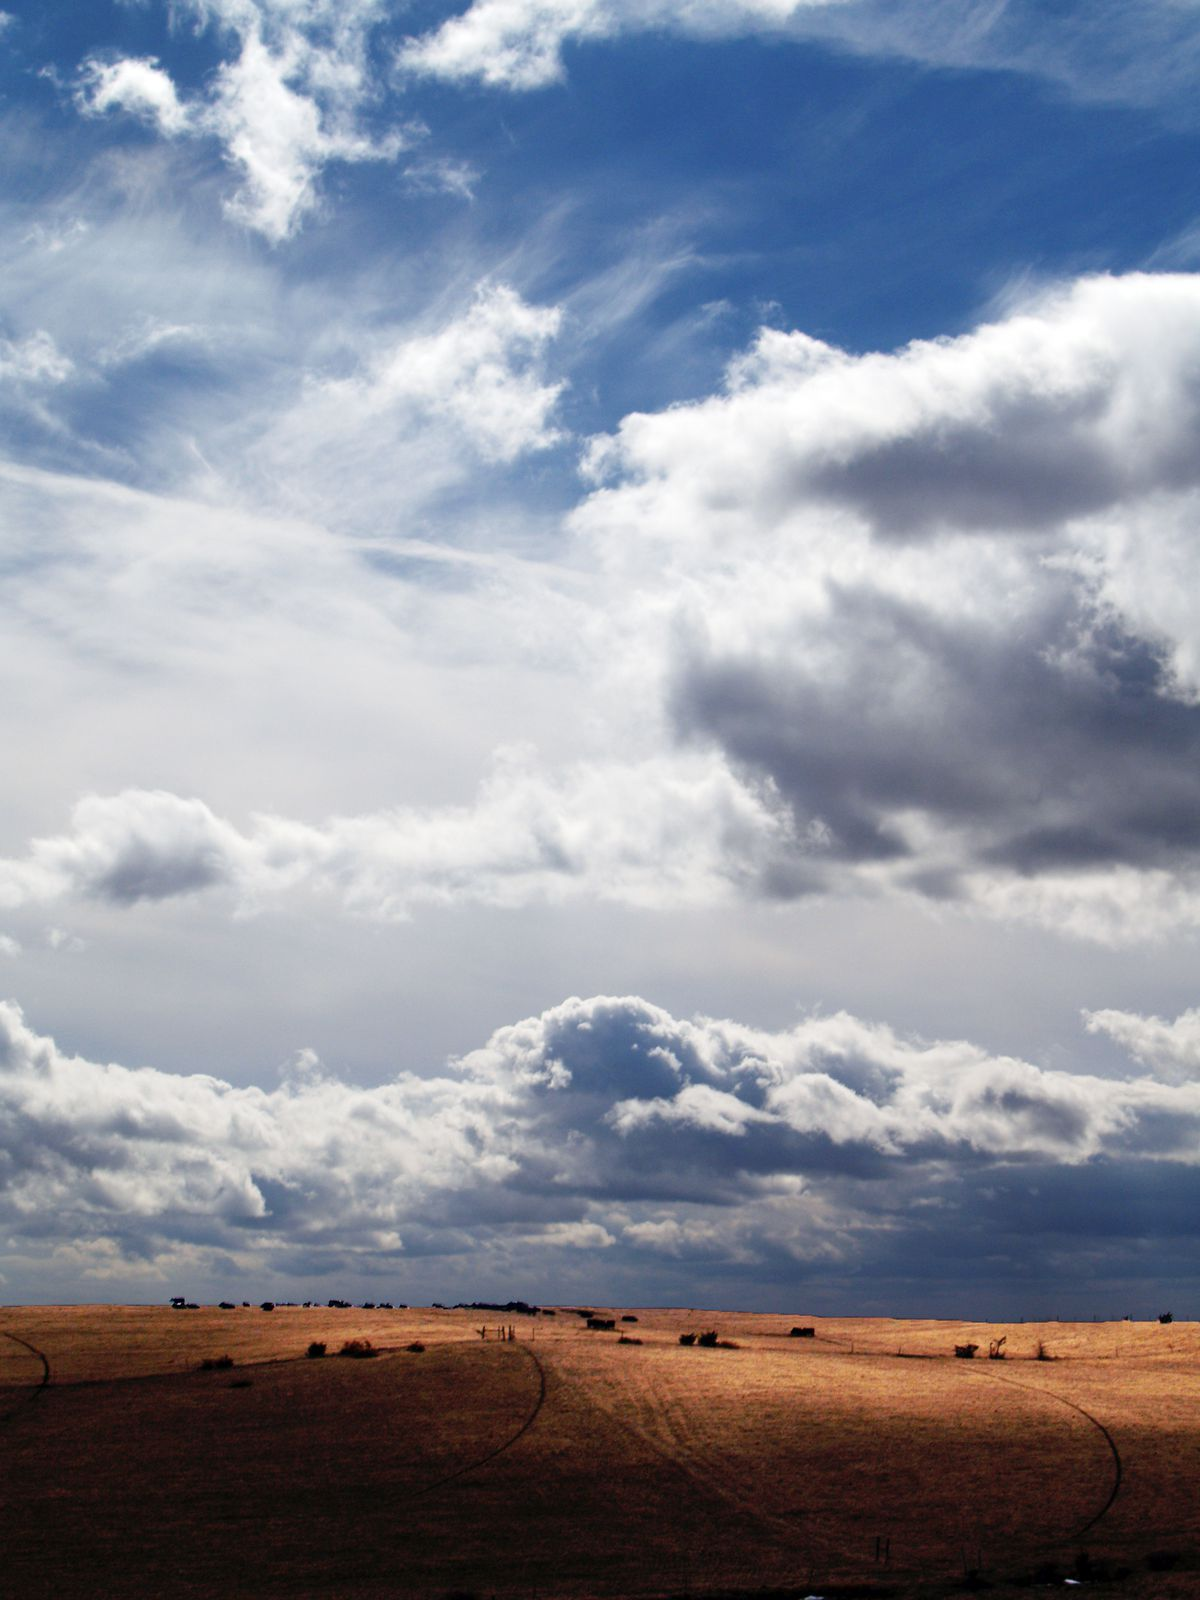 cattle in pasture and dramatic blue sky with clouds